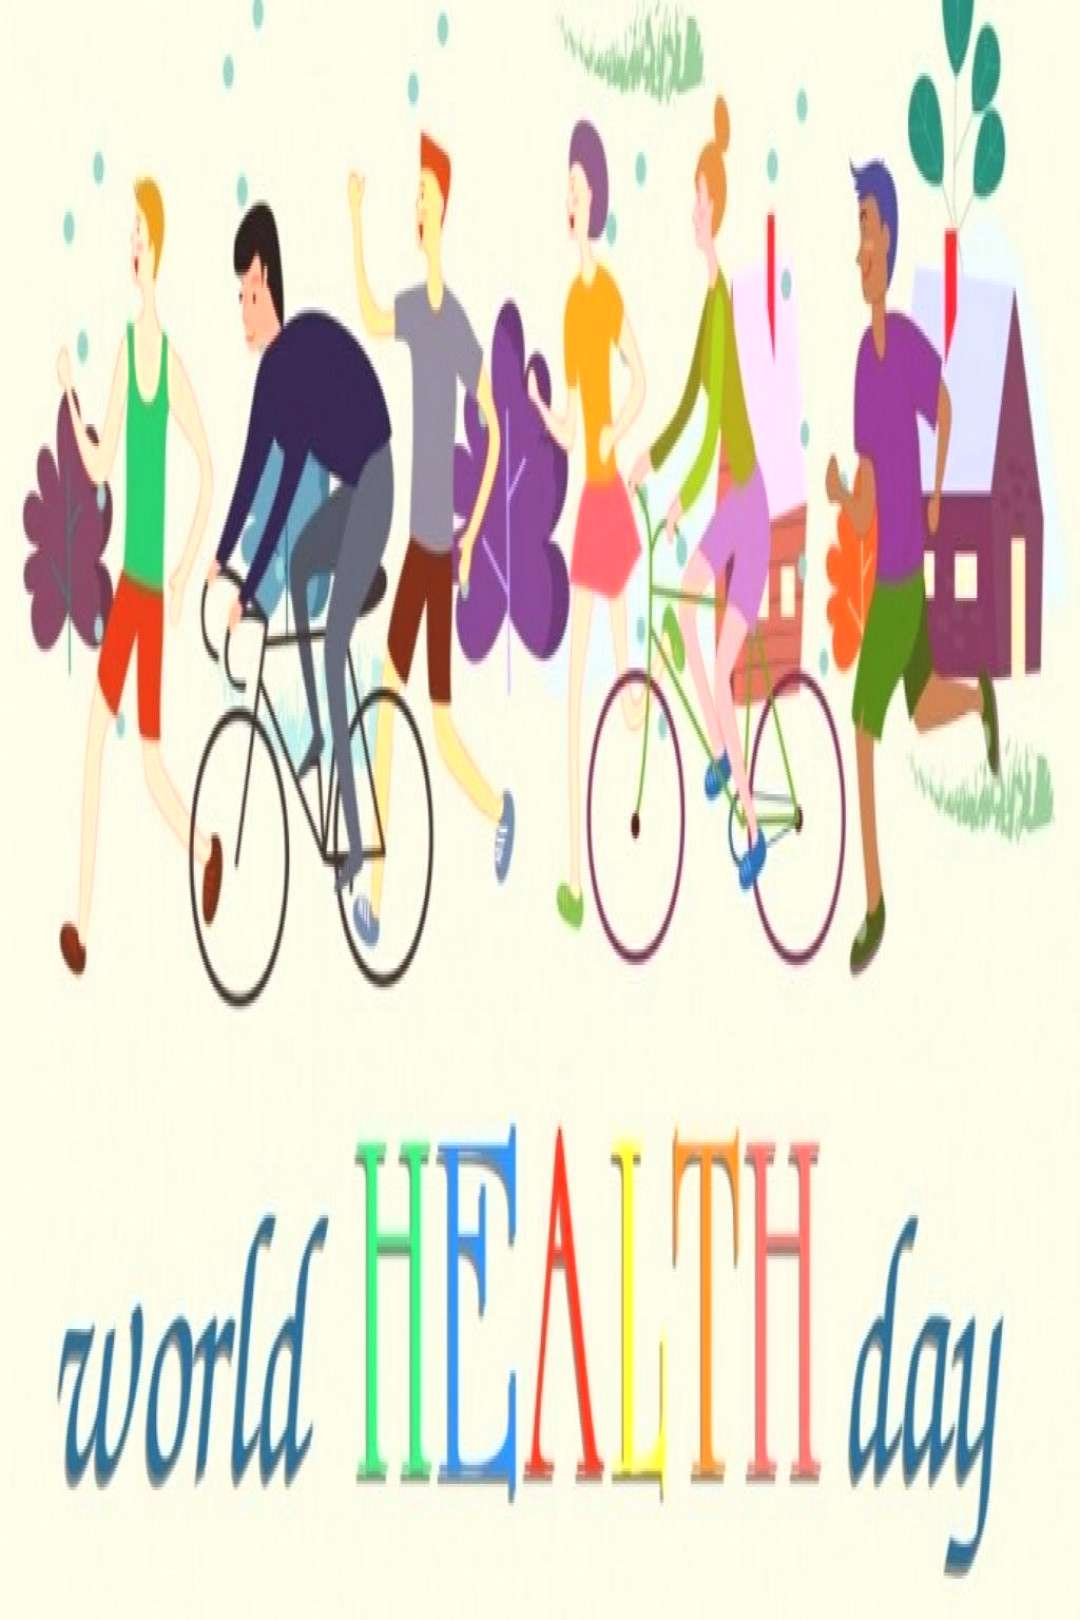 World Health Day Happy taking this opportunity to thank all the who are fighting for our against